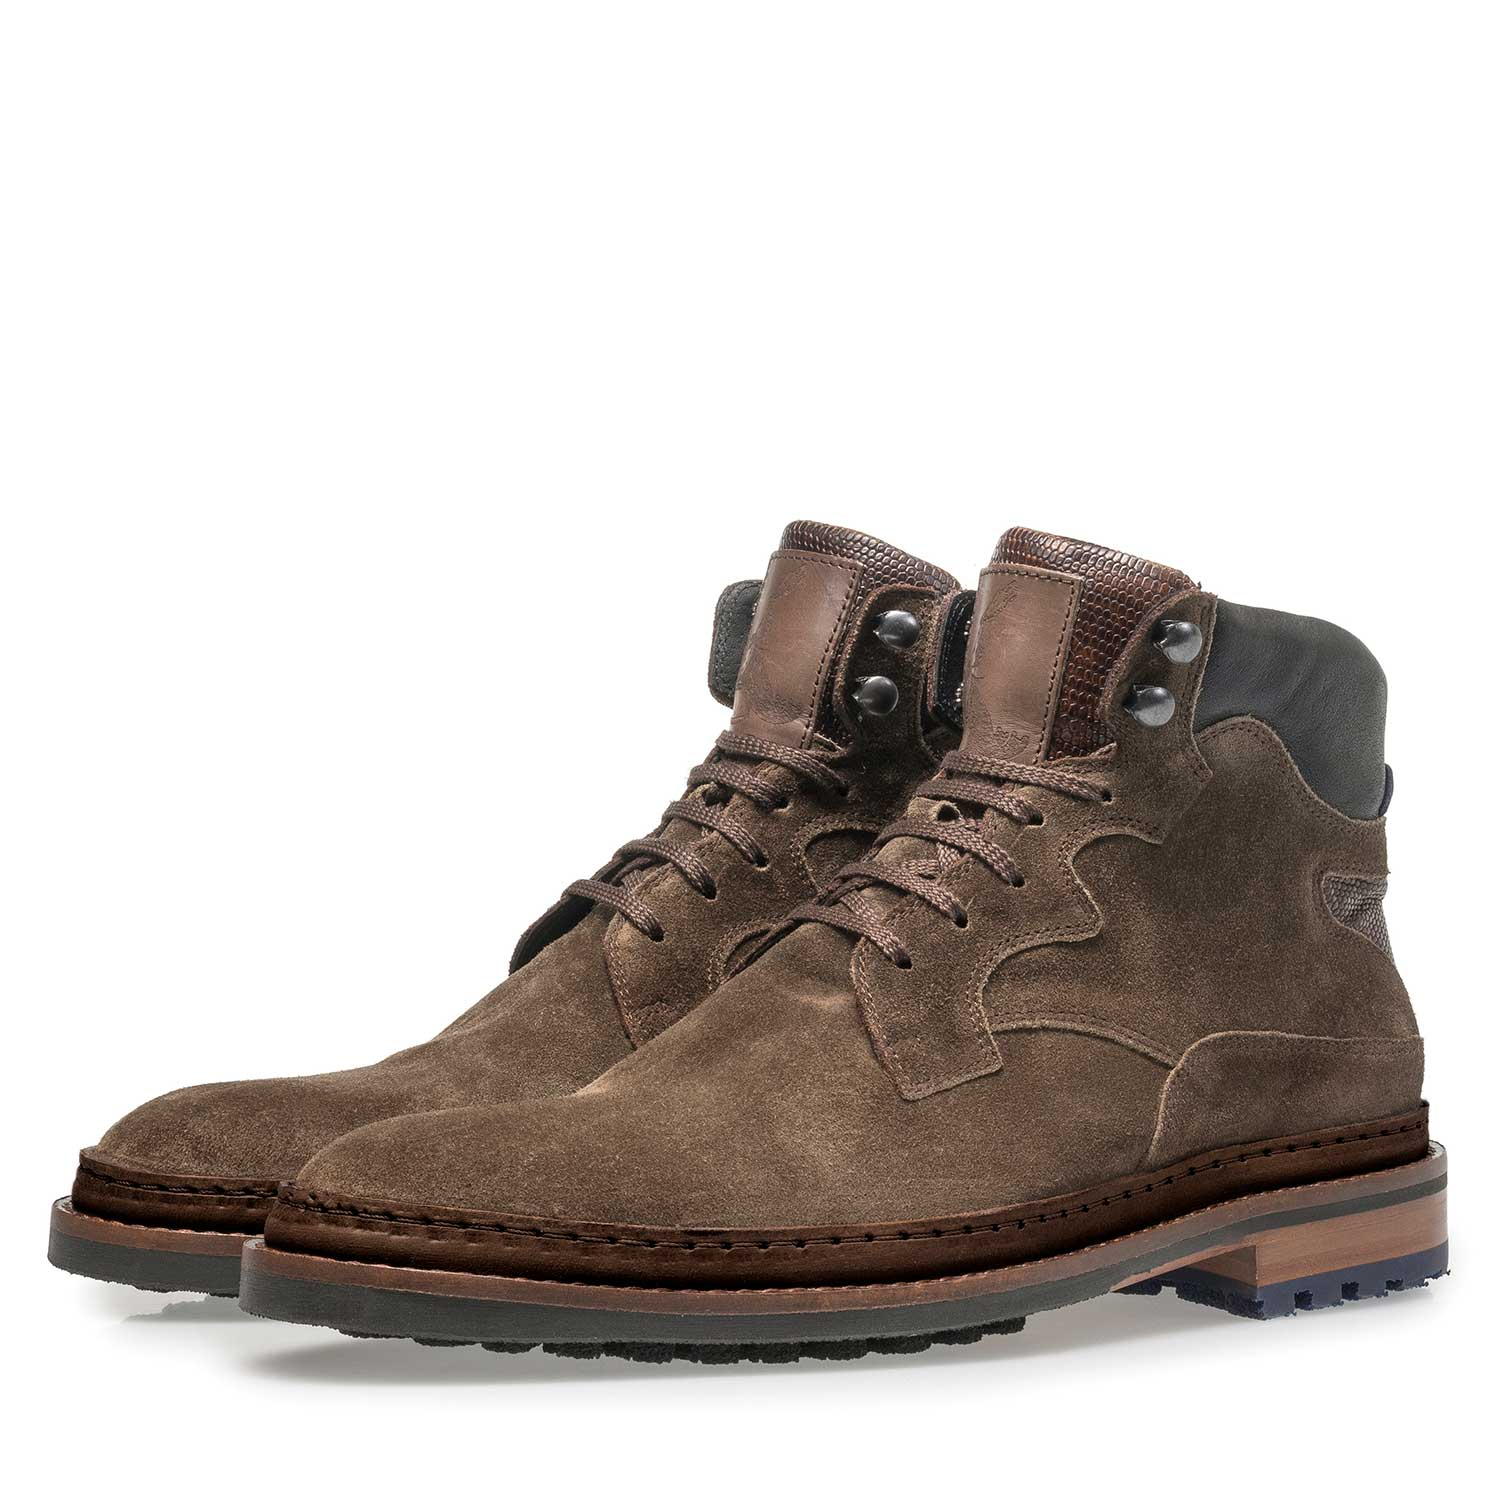 10503/01 - Suède veterboot donker taupe